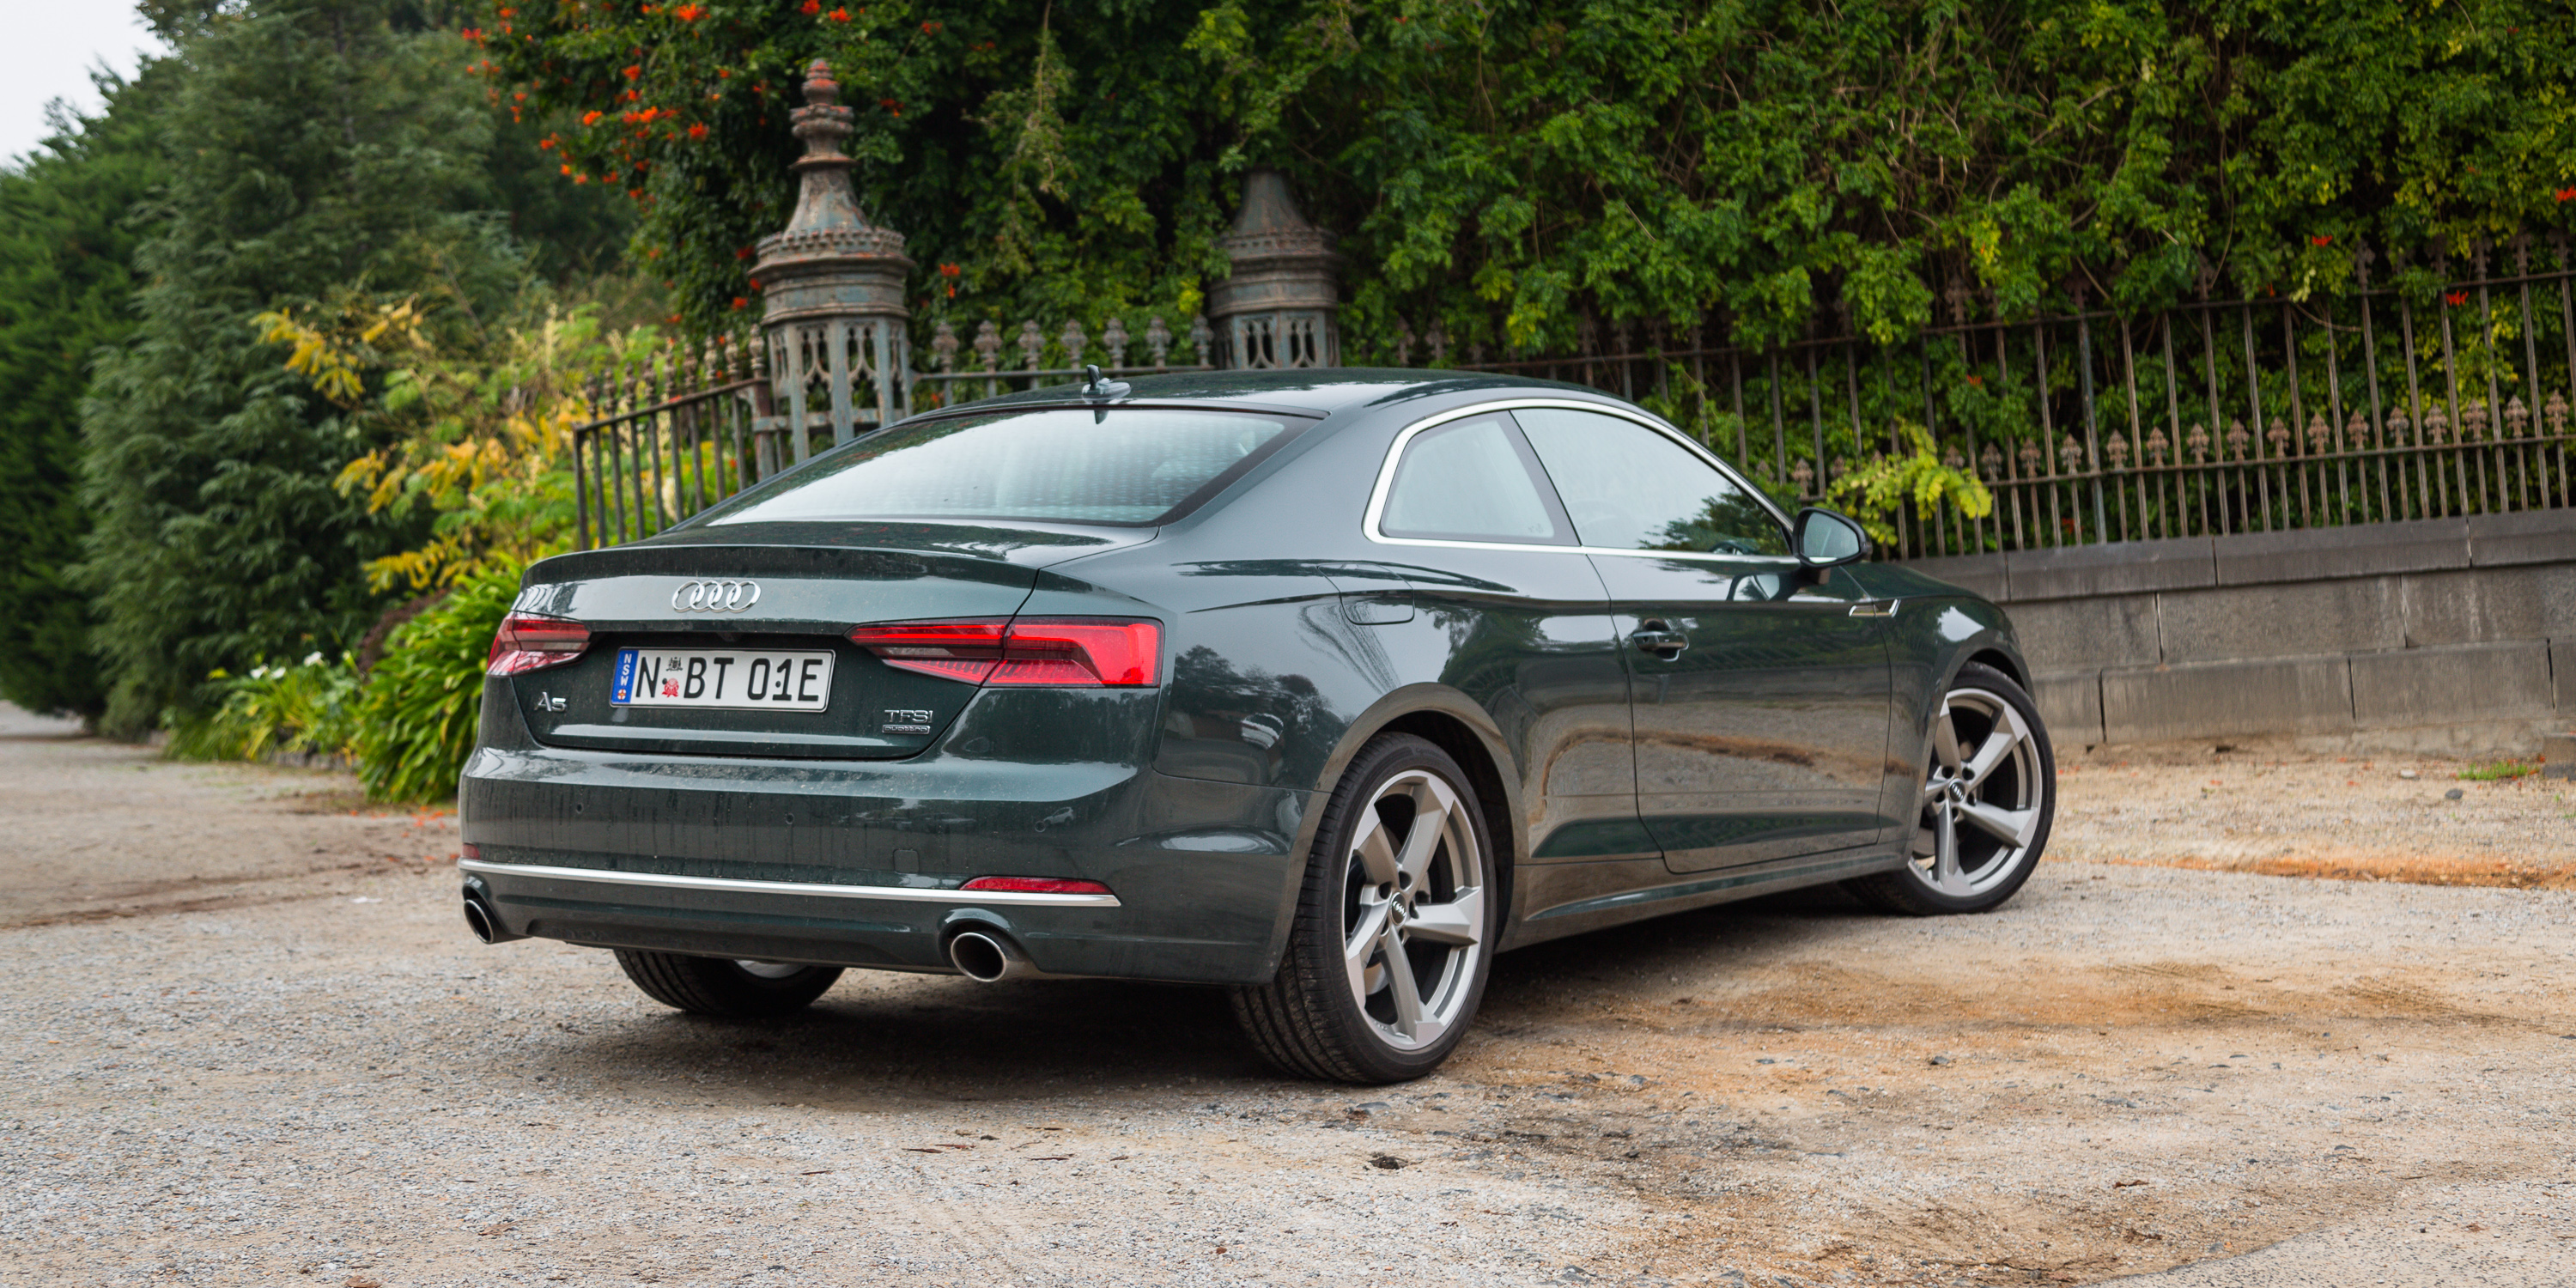 Audi A5 Coupe photo 178646